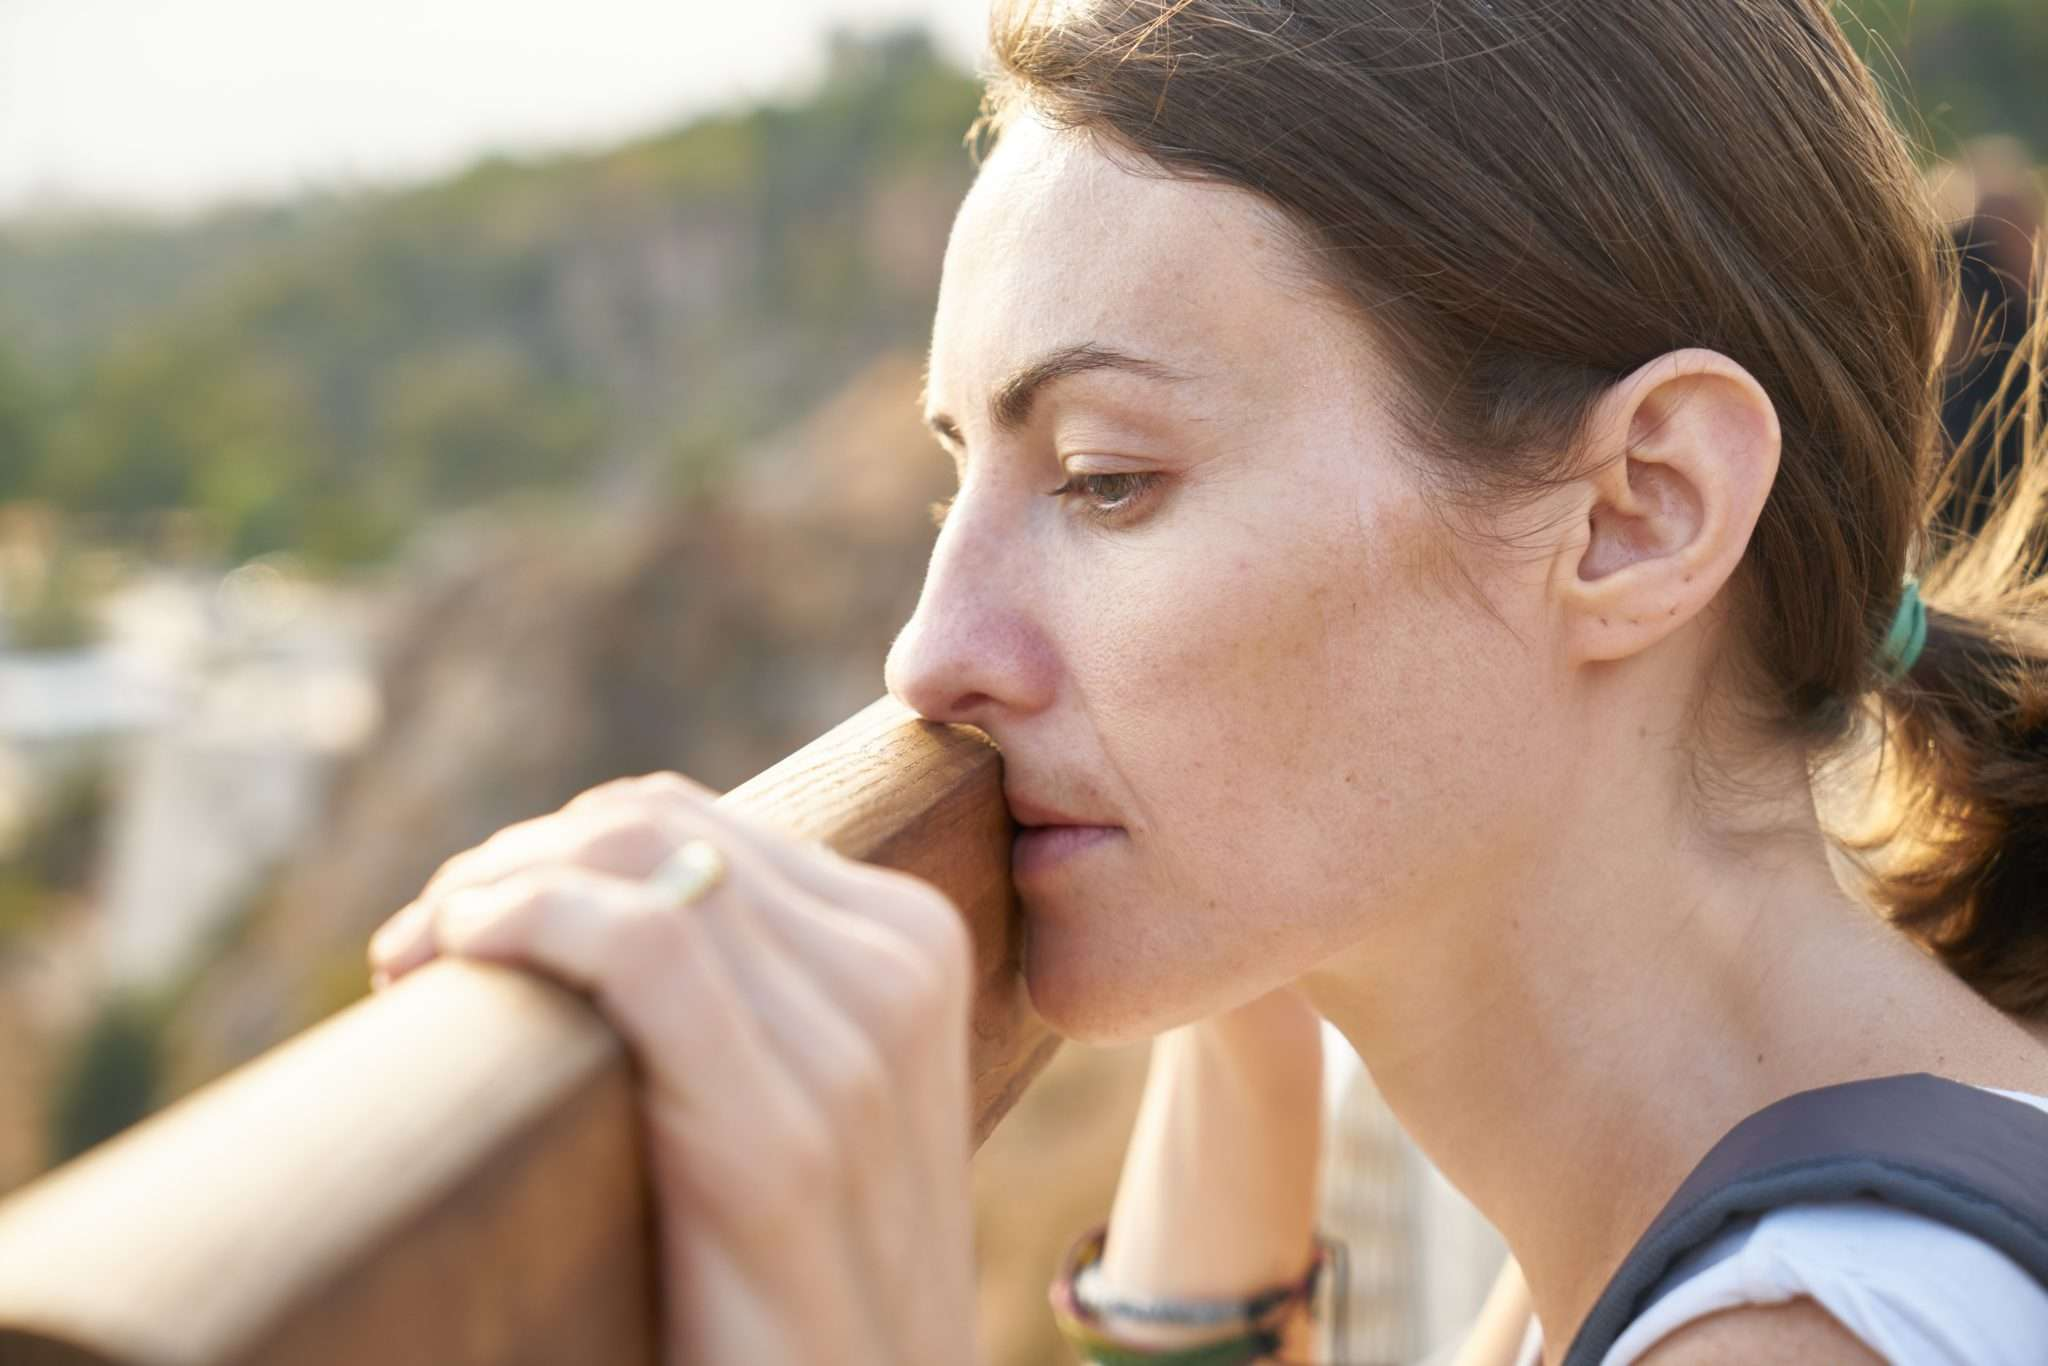 Relieved woman after marriage breakdown